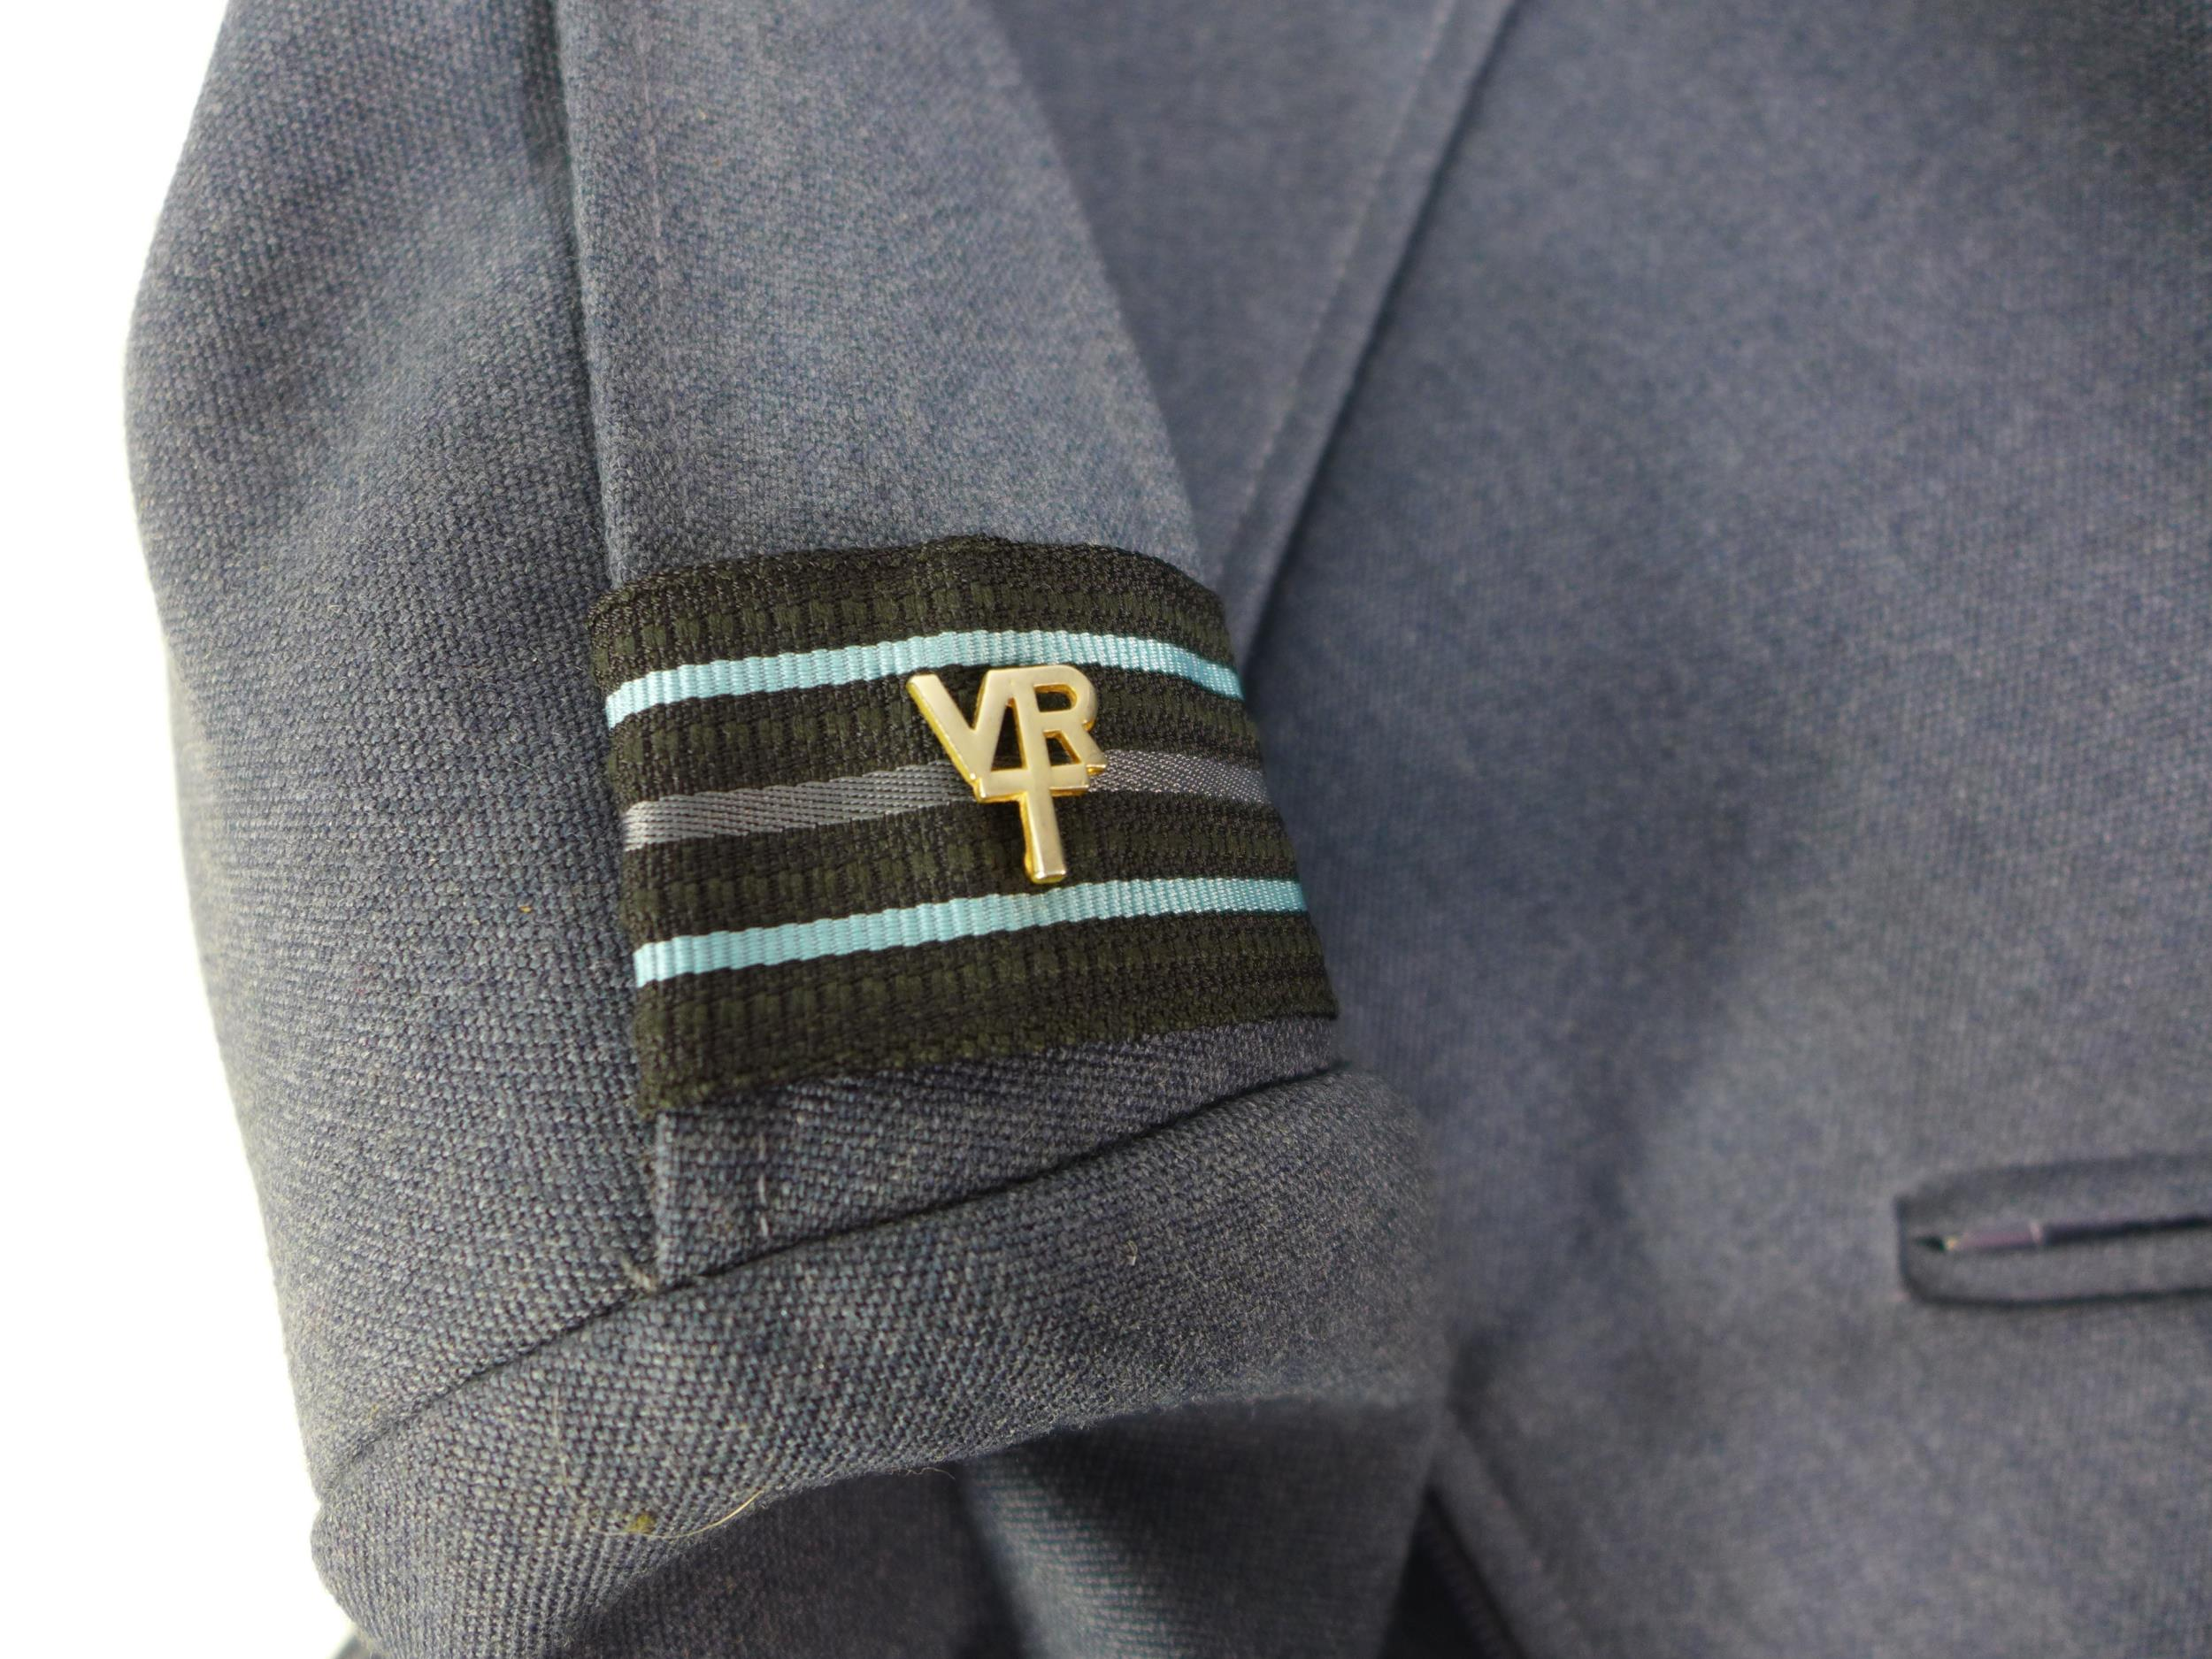 A RAF 1972 PATTERN UNIFORM COMPRISING OF A JACKET AND TROUSERS, SIZE 180/96 - Image 2 of 4